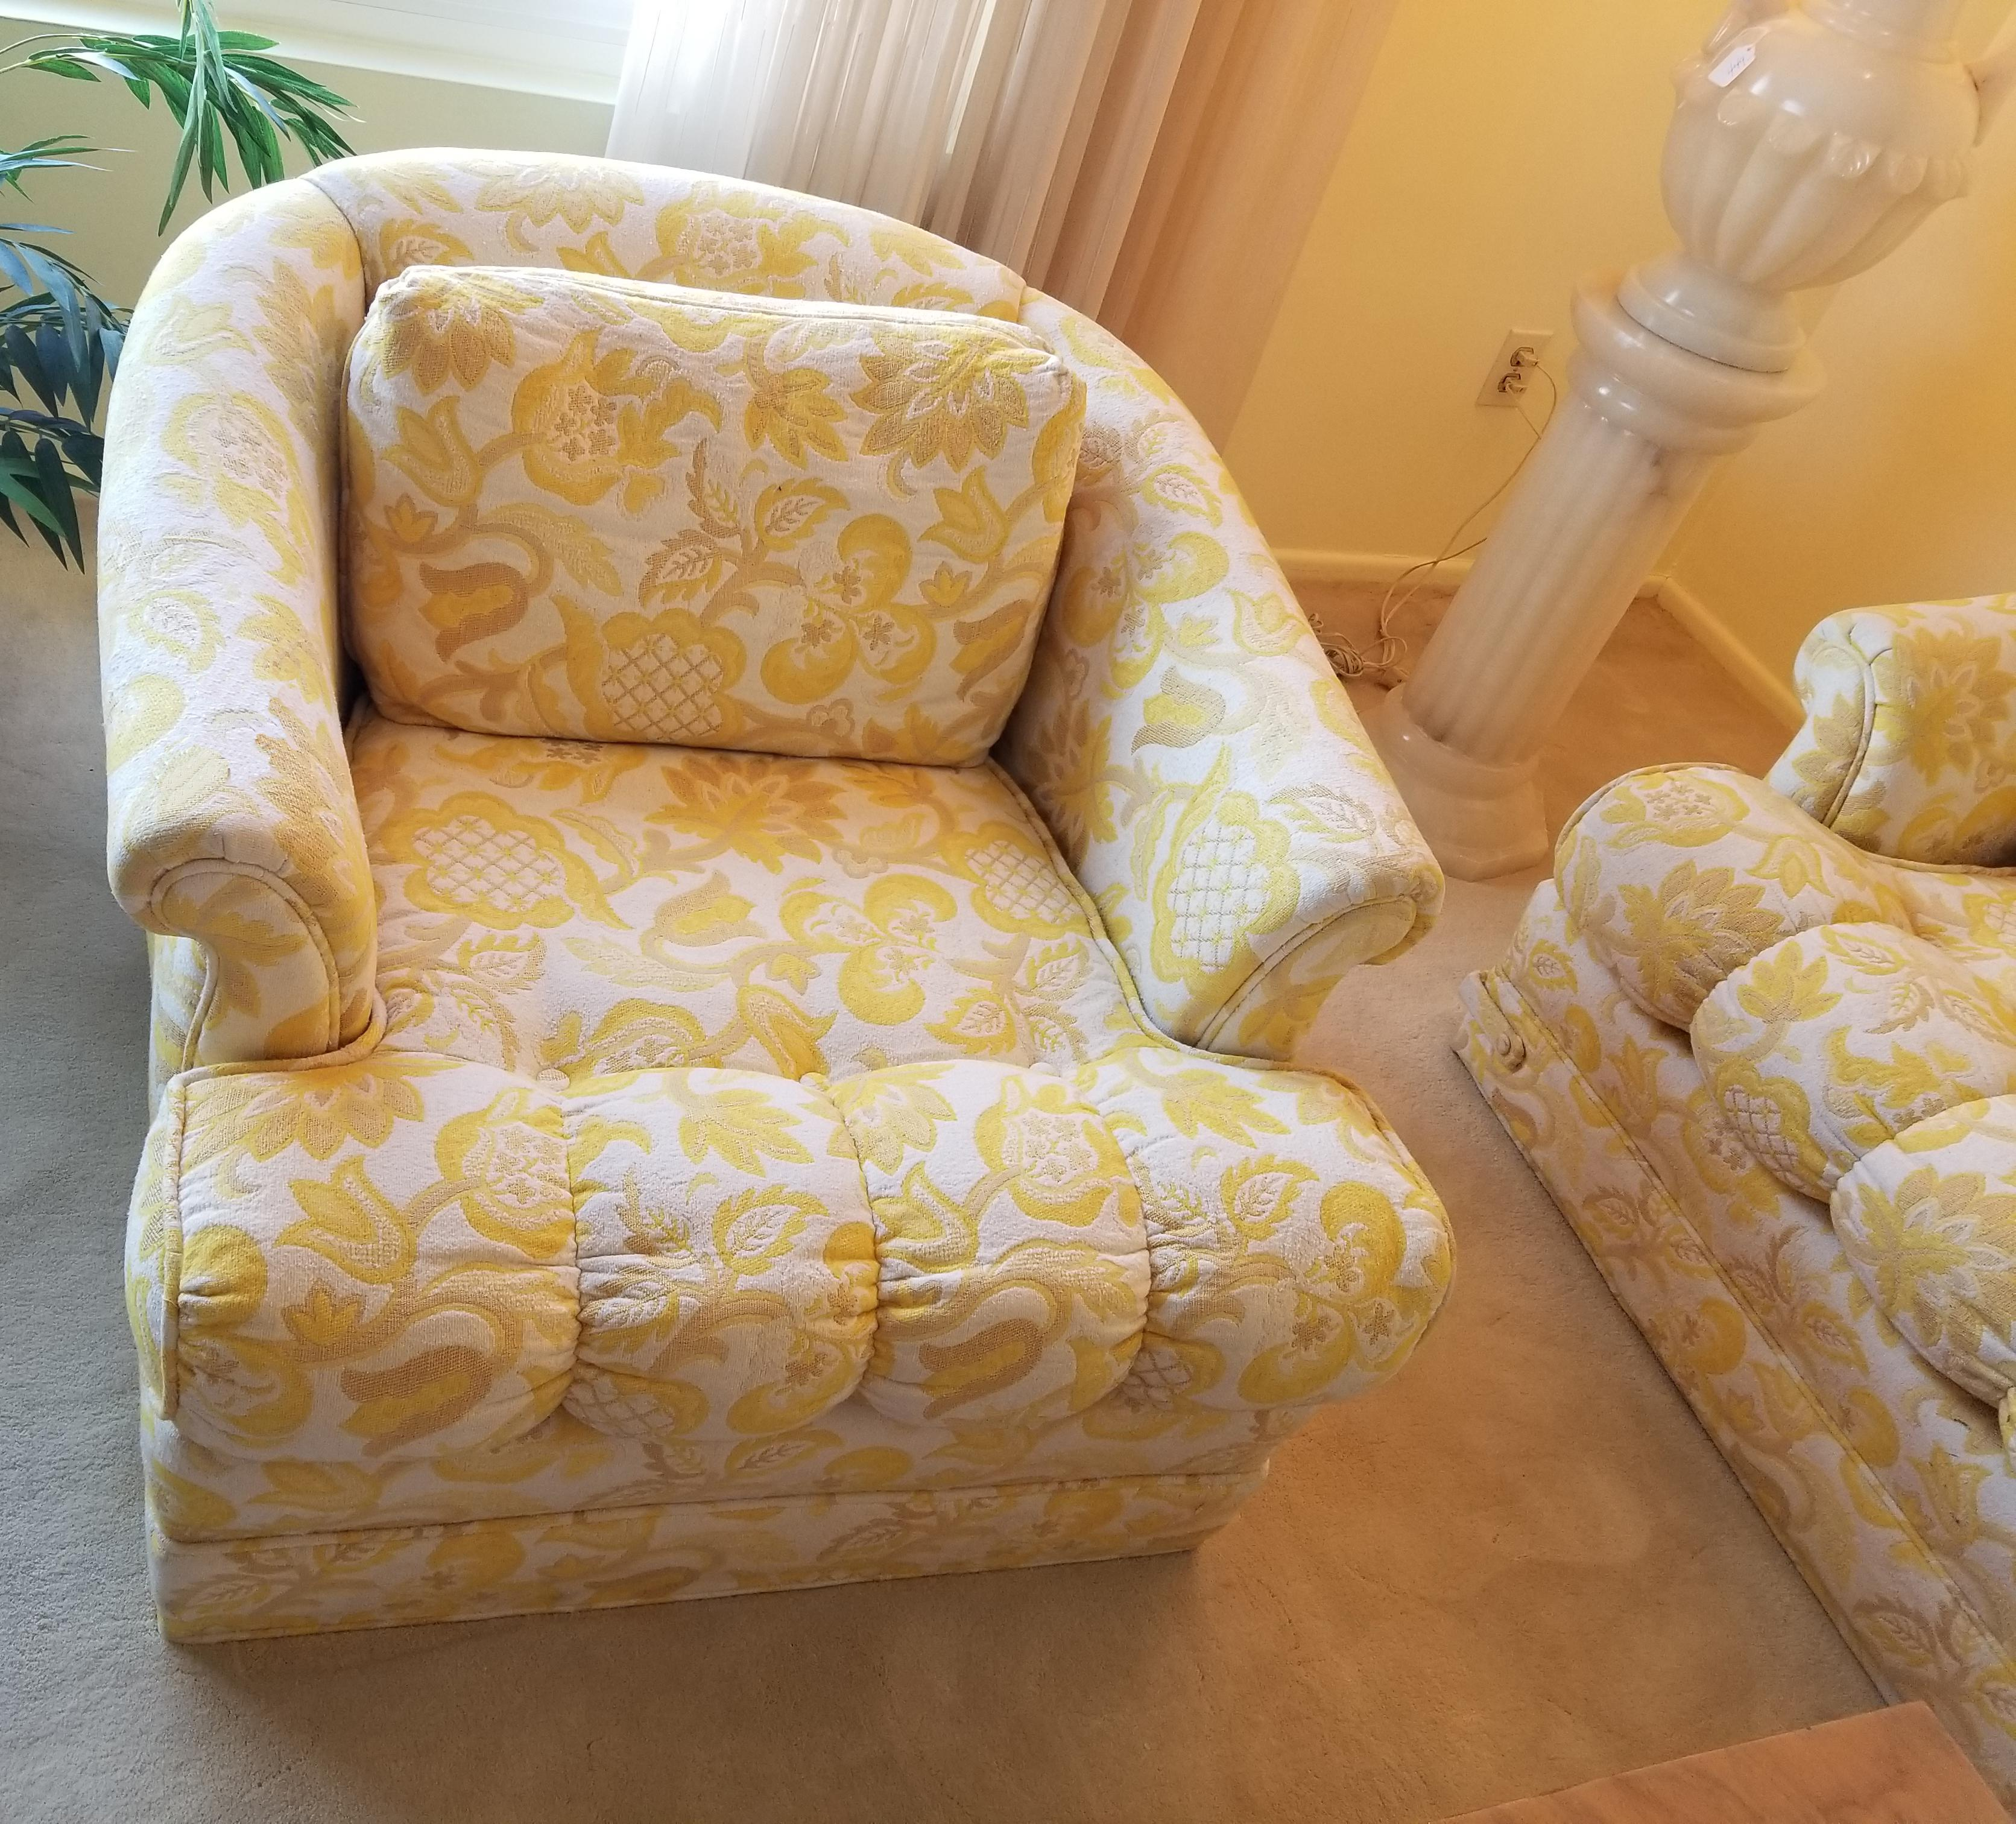 Pair Of Vintage Hollywood Regency Yellow U0026 White Floral Club Chairs   Image  4 Of 11